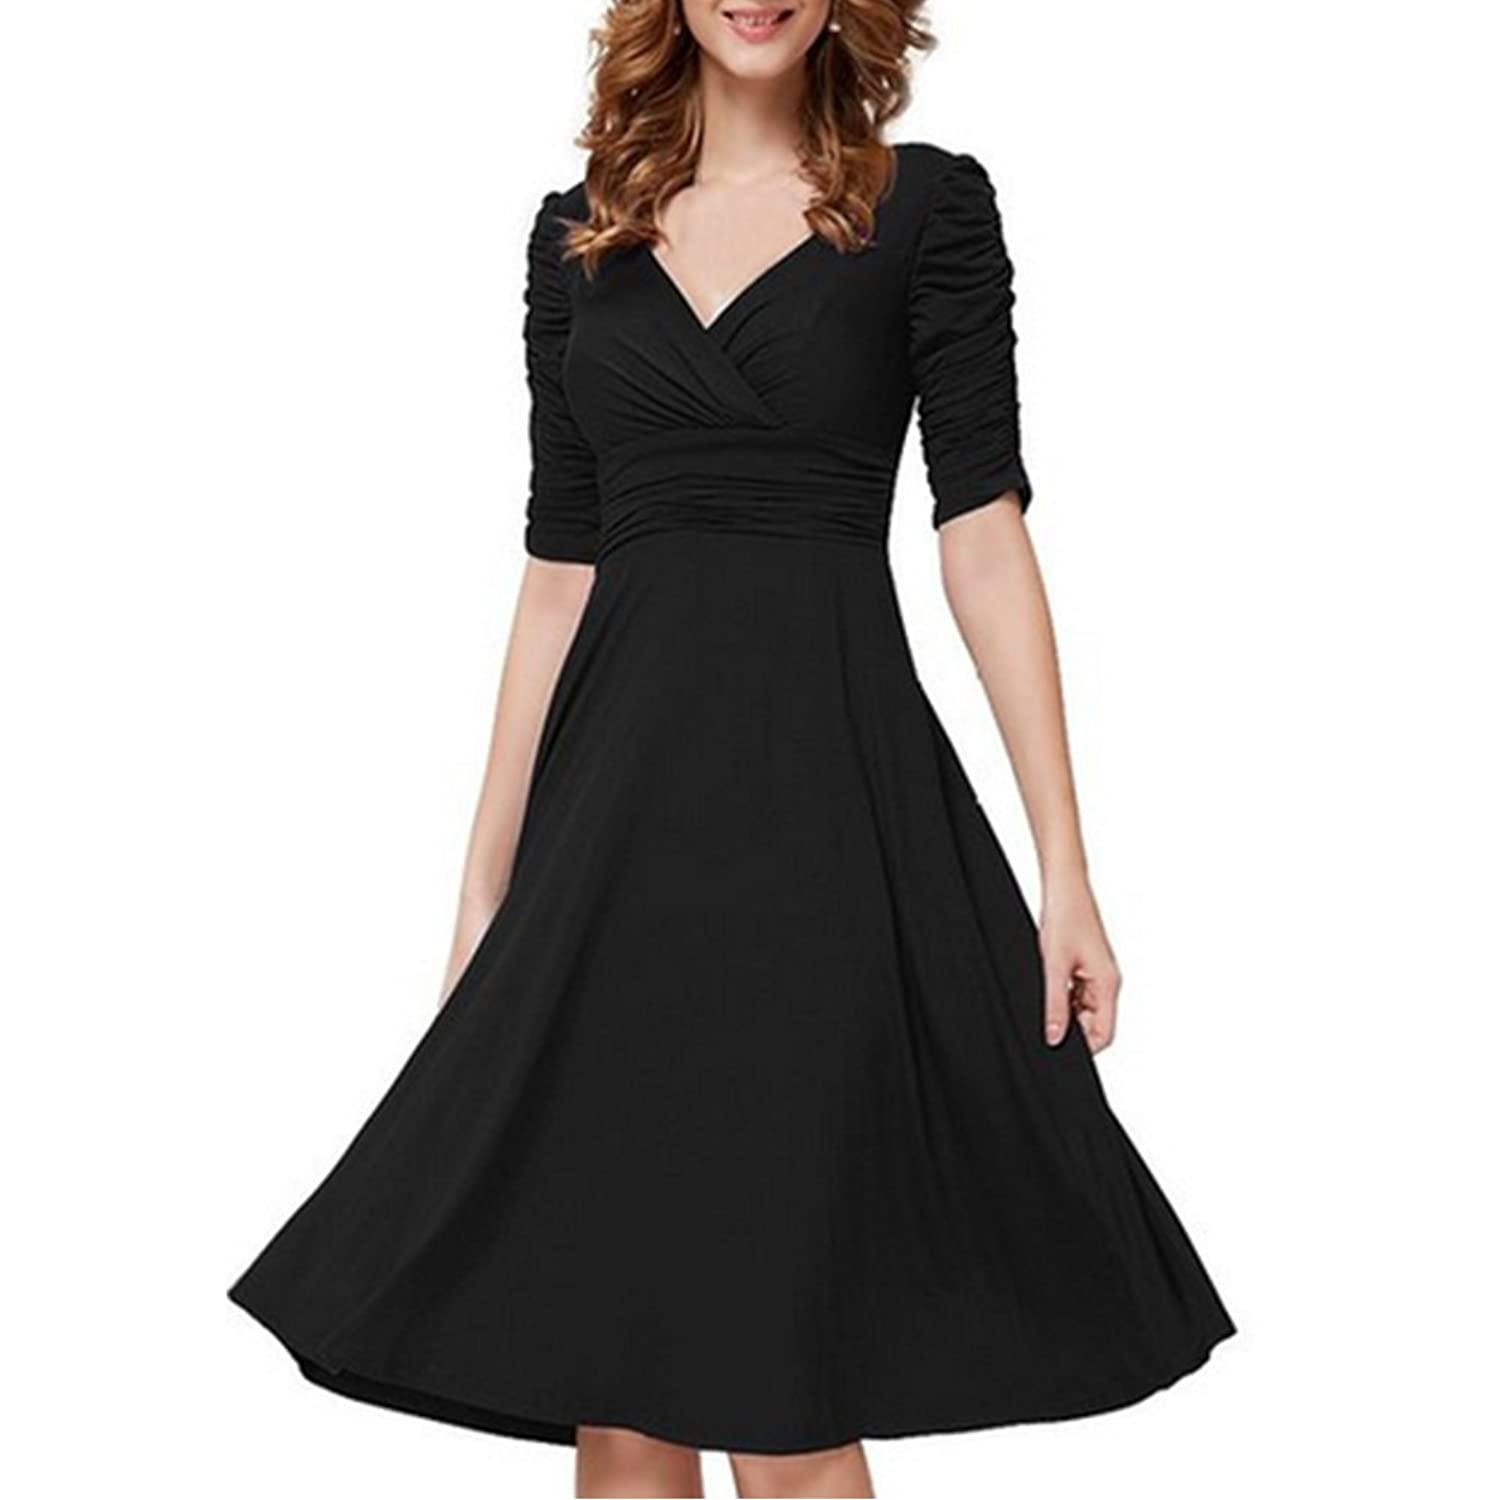 Sunsent Lady Deep V Neck Front Pleated Bodycon Party Cocktail Nightclub Dress